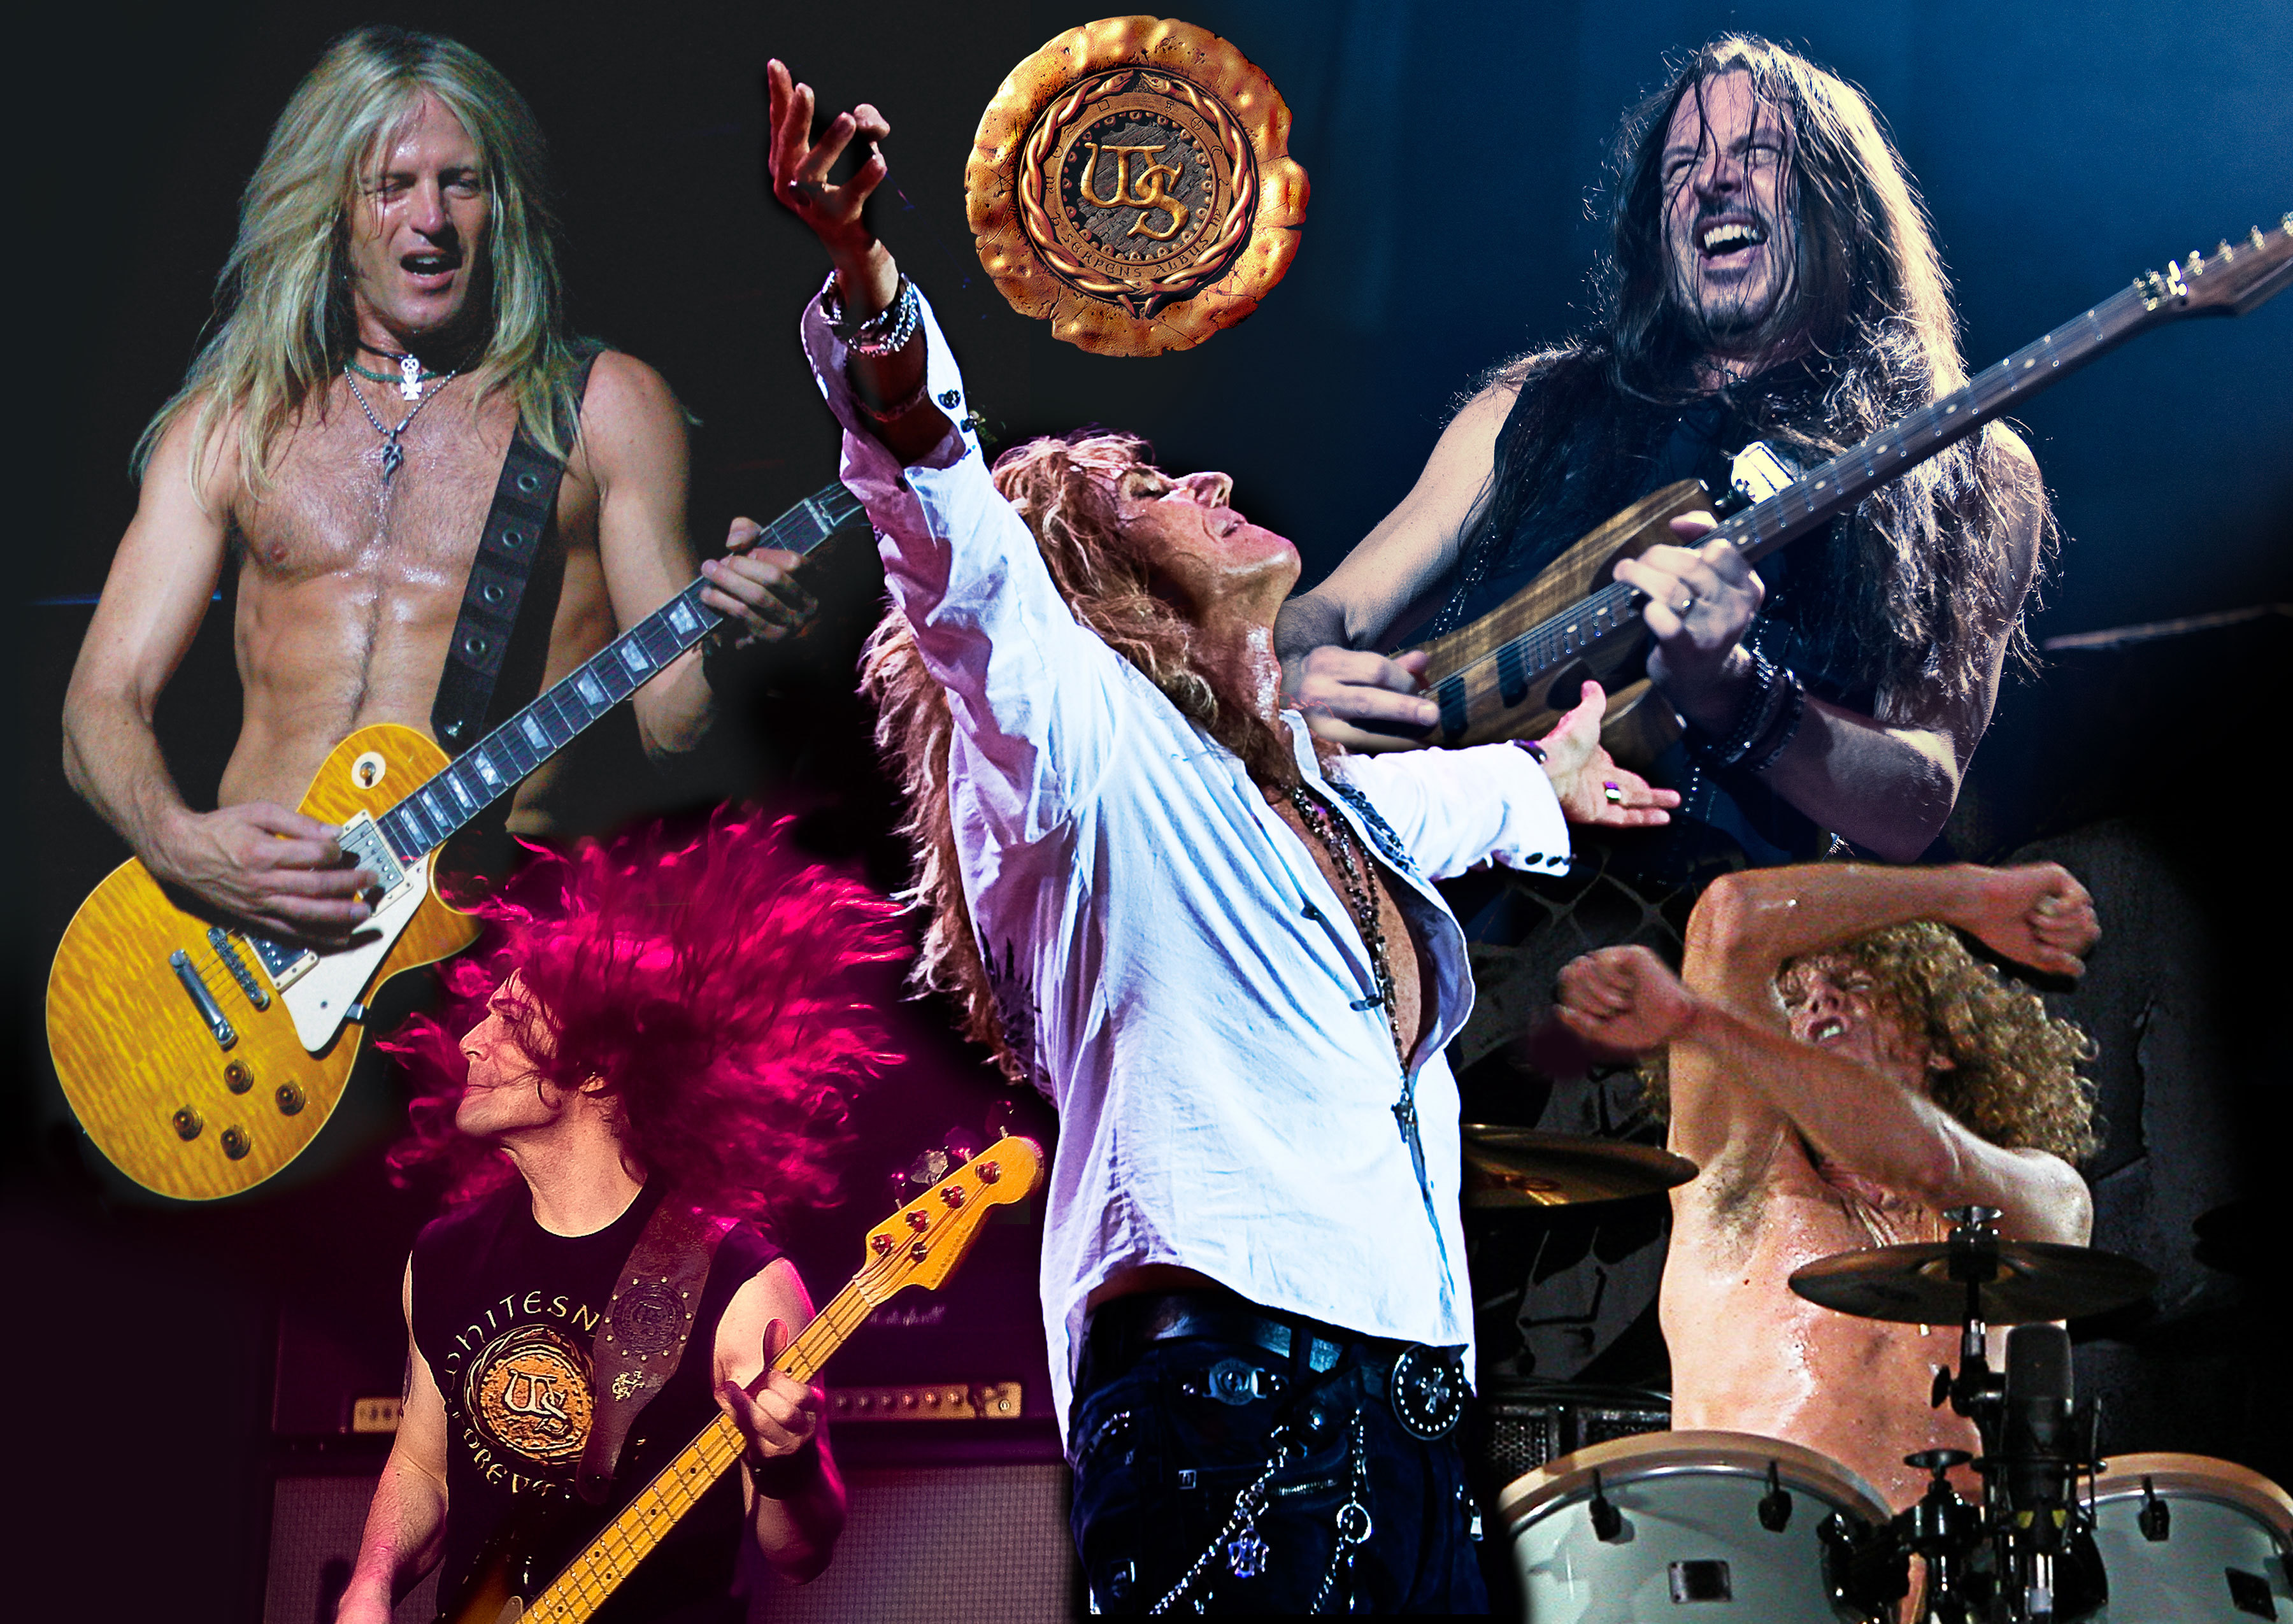 Whitesnake, Journey and Thunder at LG Arena, Birmingham ...